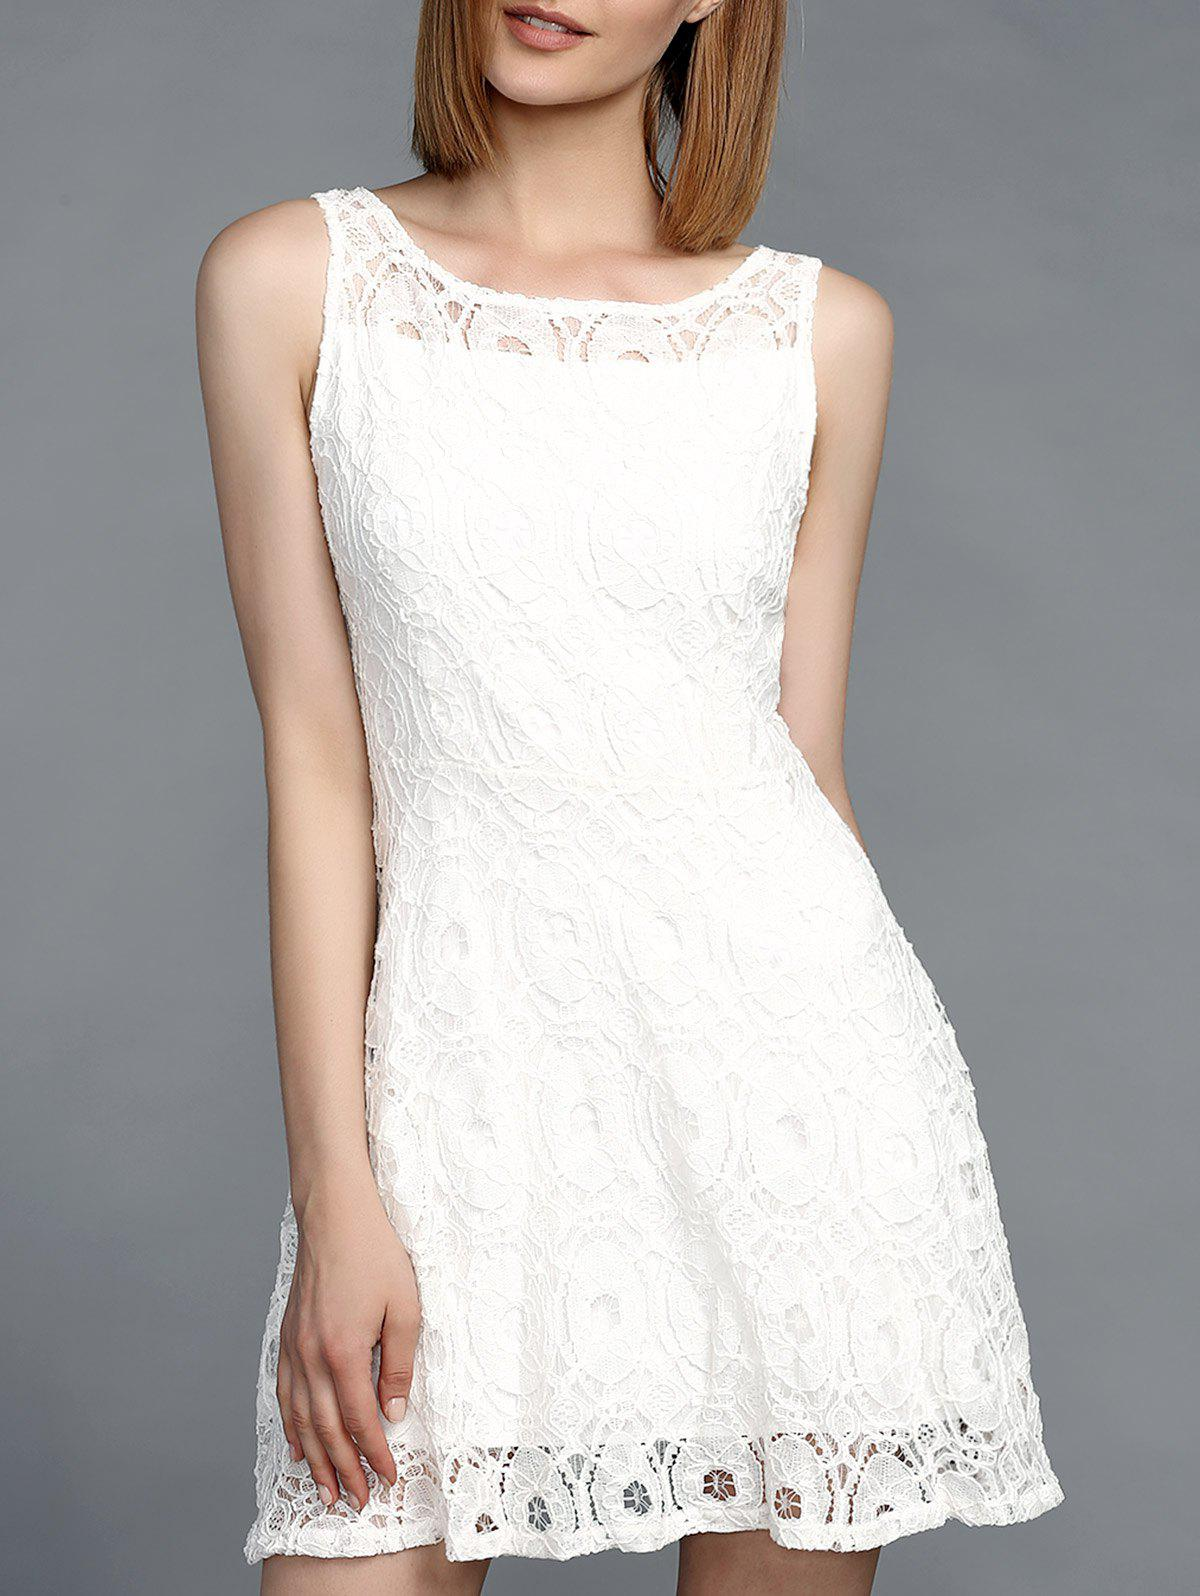 Stunning Women's Jewel Neck Sleeveless Lace Dress - WHITE S